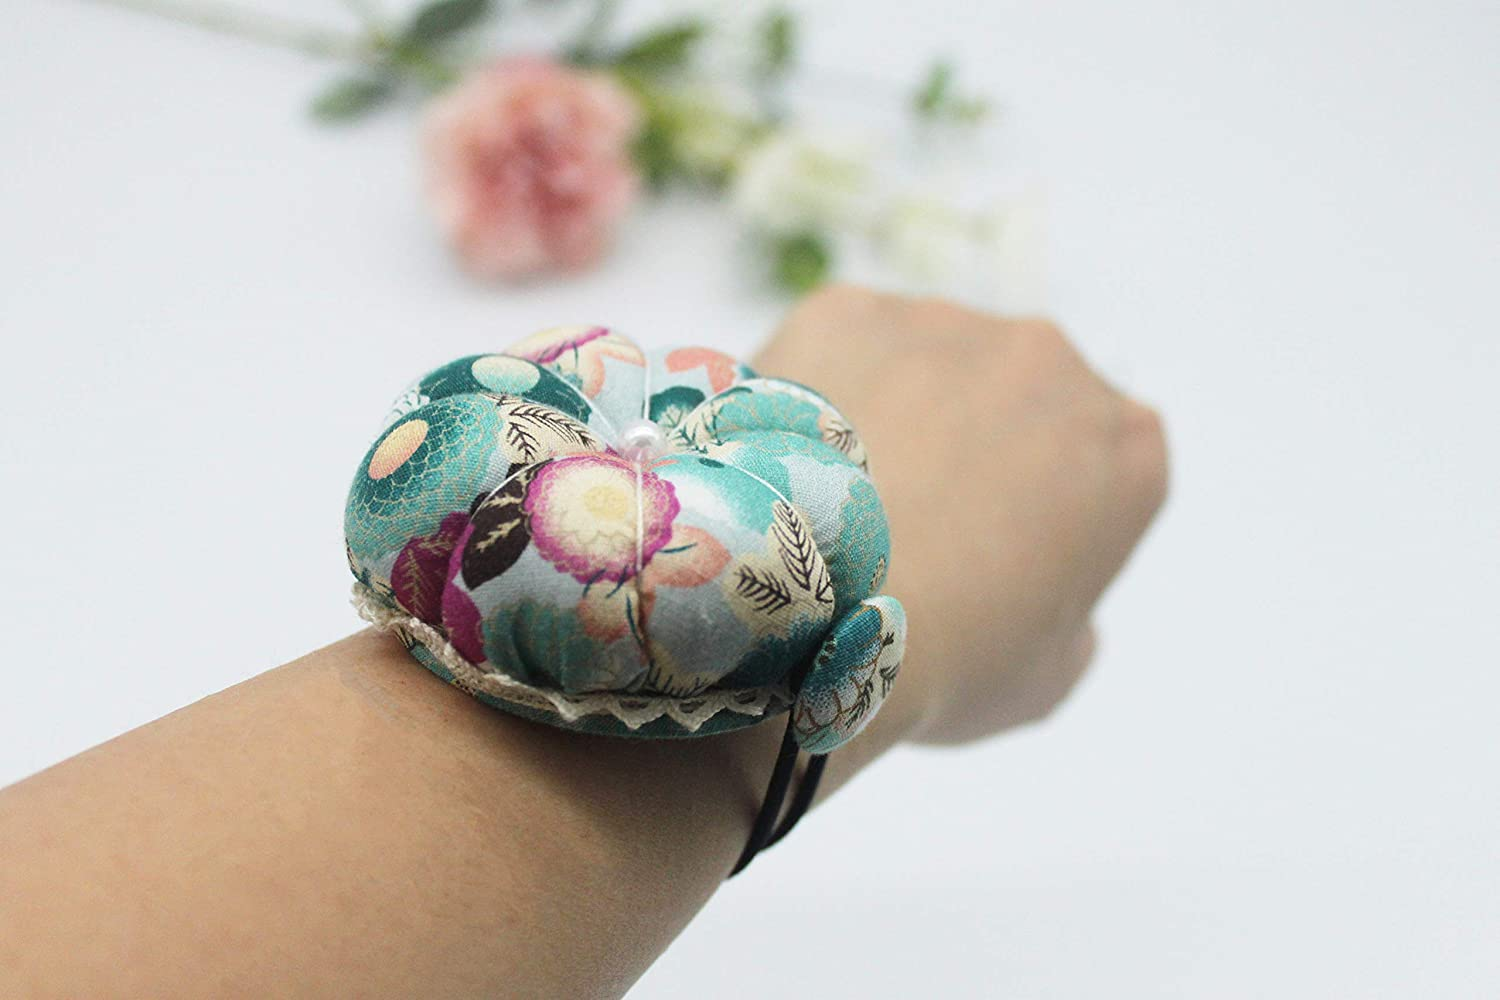 Cross Stitch Sewing Home Sewing Tools Pumpkin Shaped Pincushion Holder DIY Tool Multi-Purpose Flora Flower Fabric Sewing Needles Pin Cushion with Elastic Wrist Belt Sewing Machine Decoration